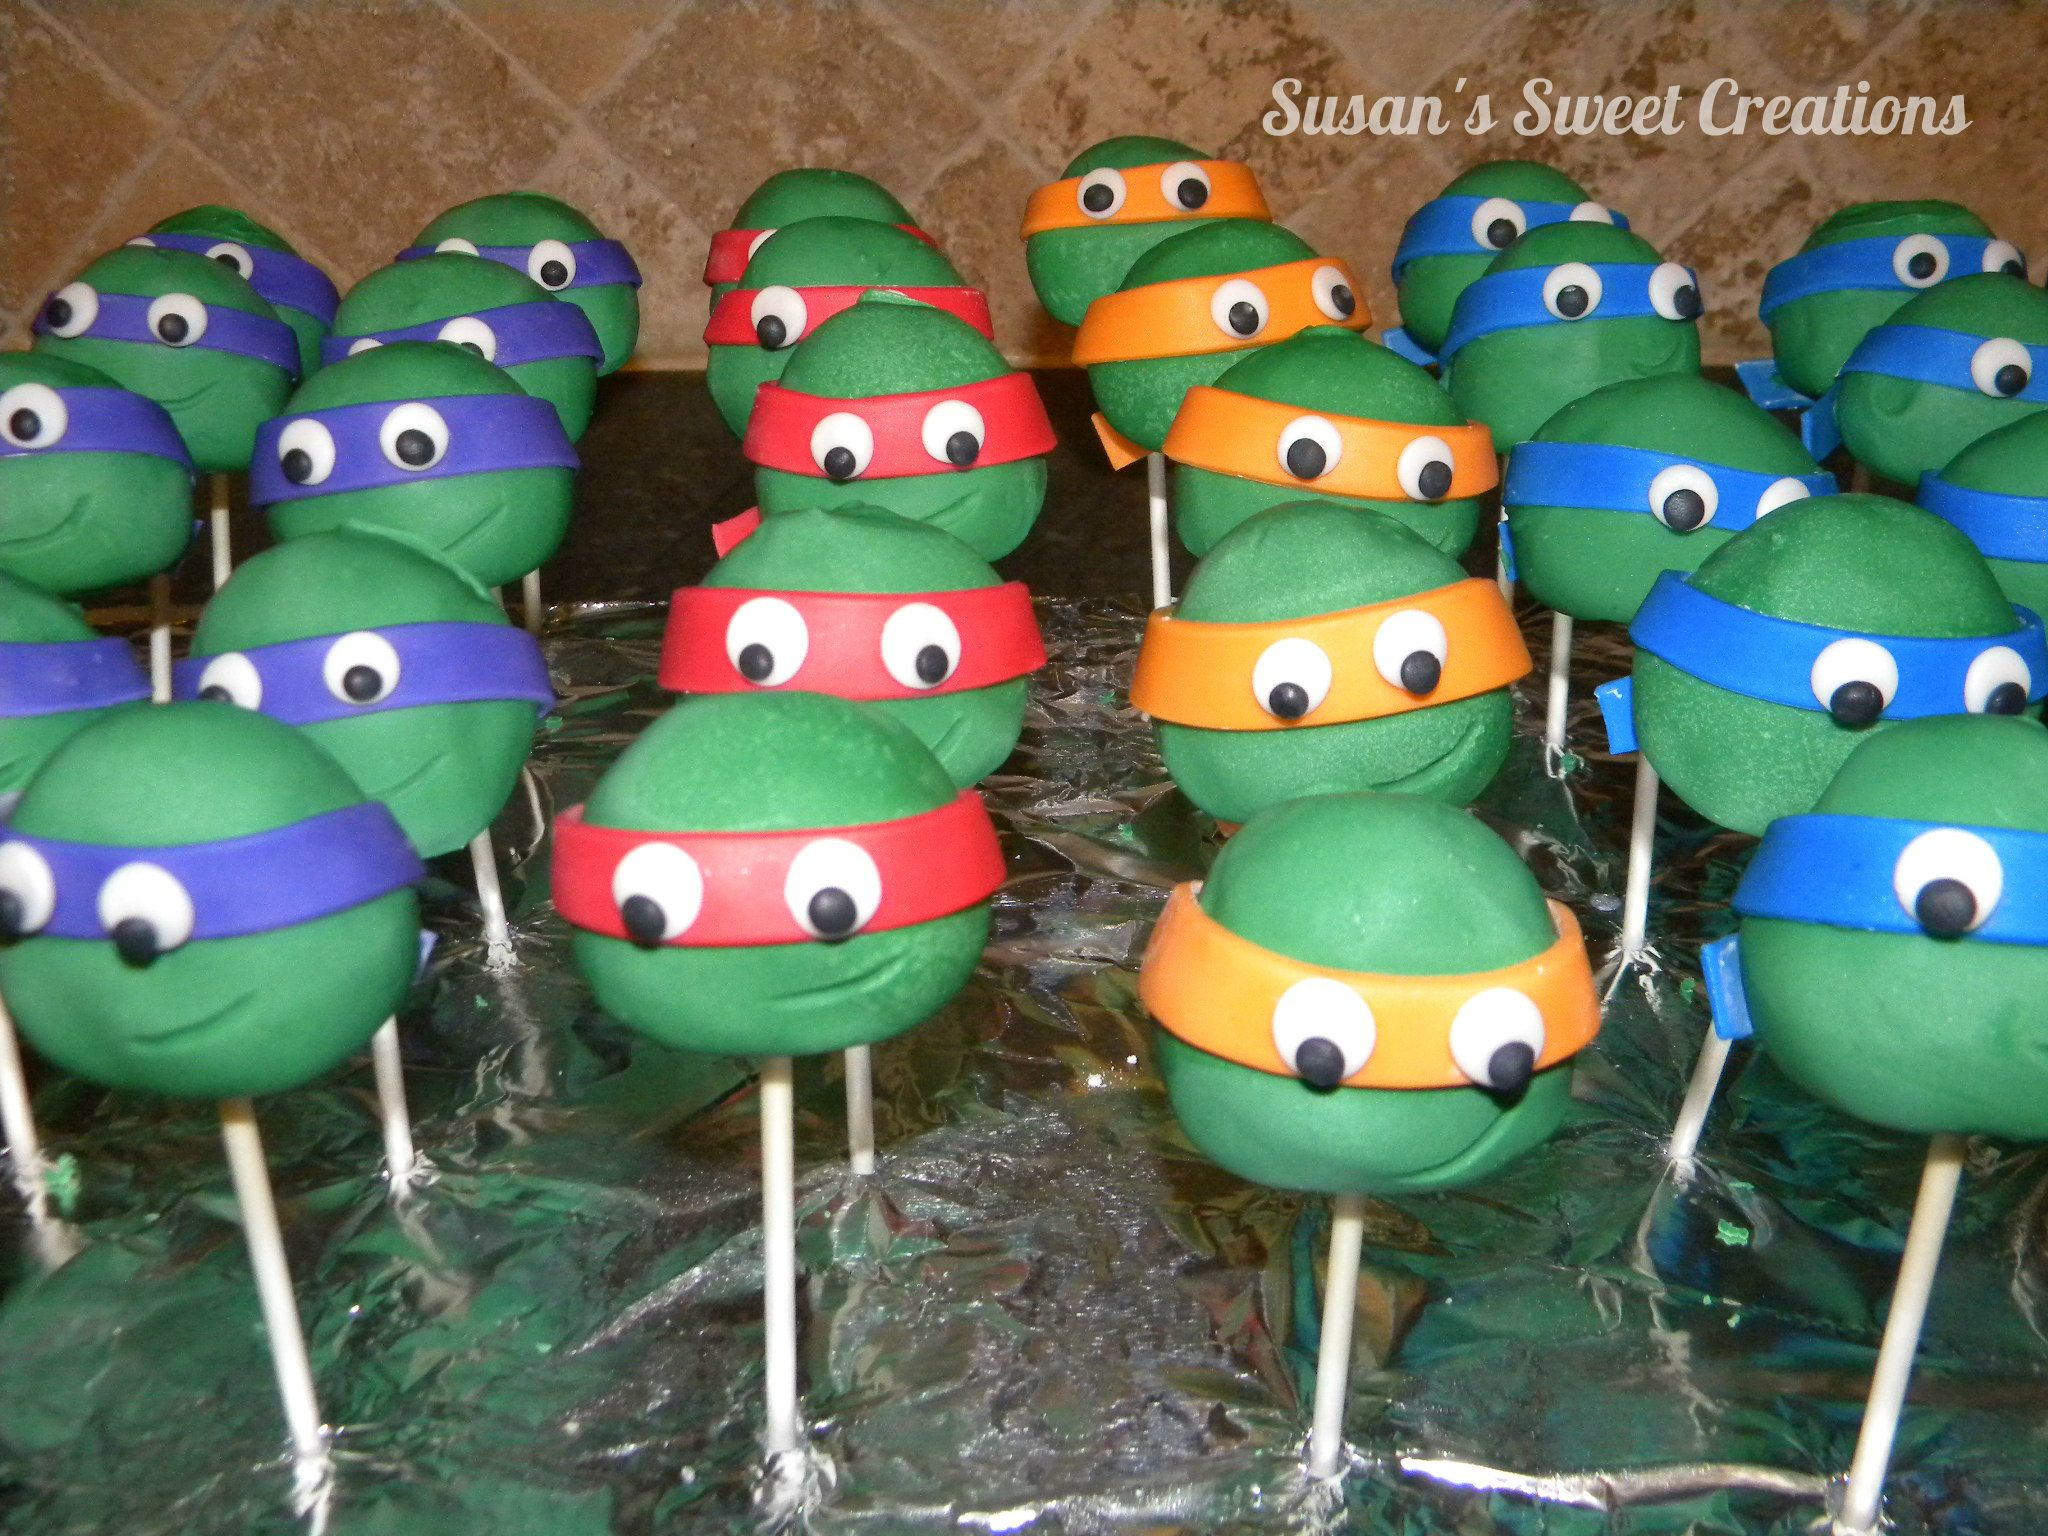 Our Teenage Mutant Ninja Turtle Cake Pops Dipped In Chocolate And Masks And Eyes Made Of Fo Birthday Cakes For Teens Ninja Turtle Cake Pops Ninja Turtle Cake